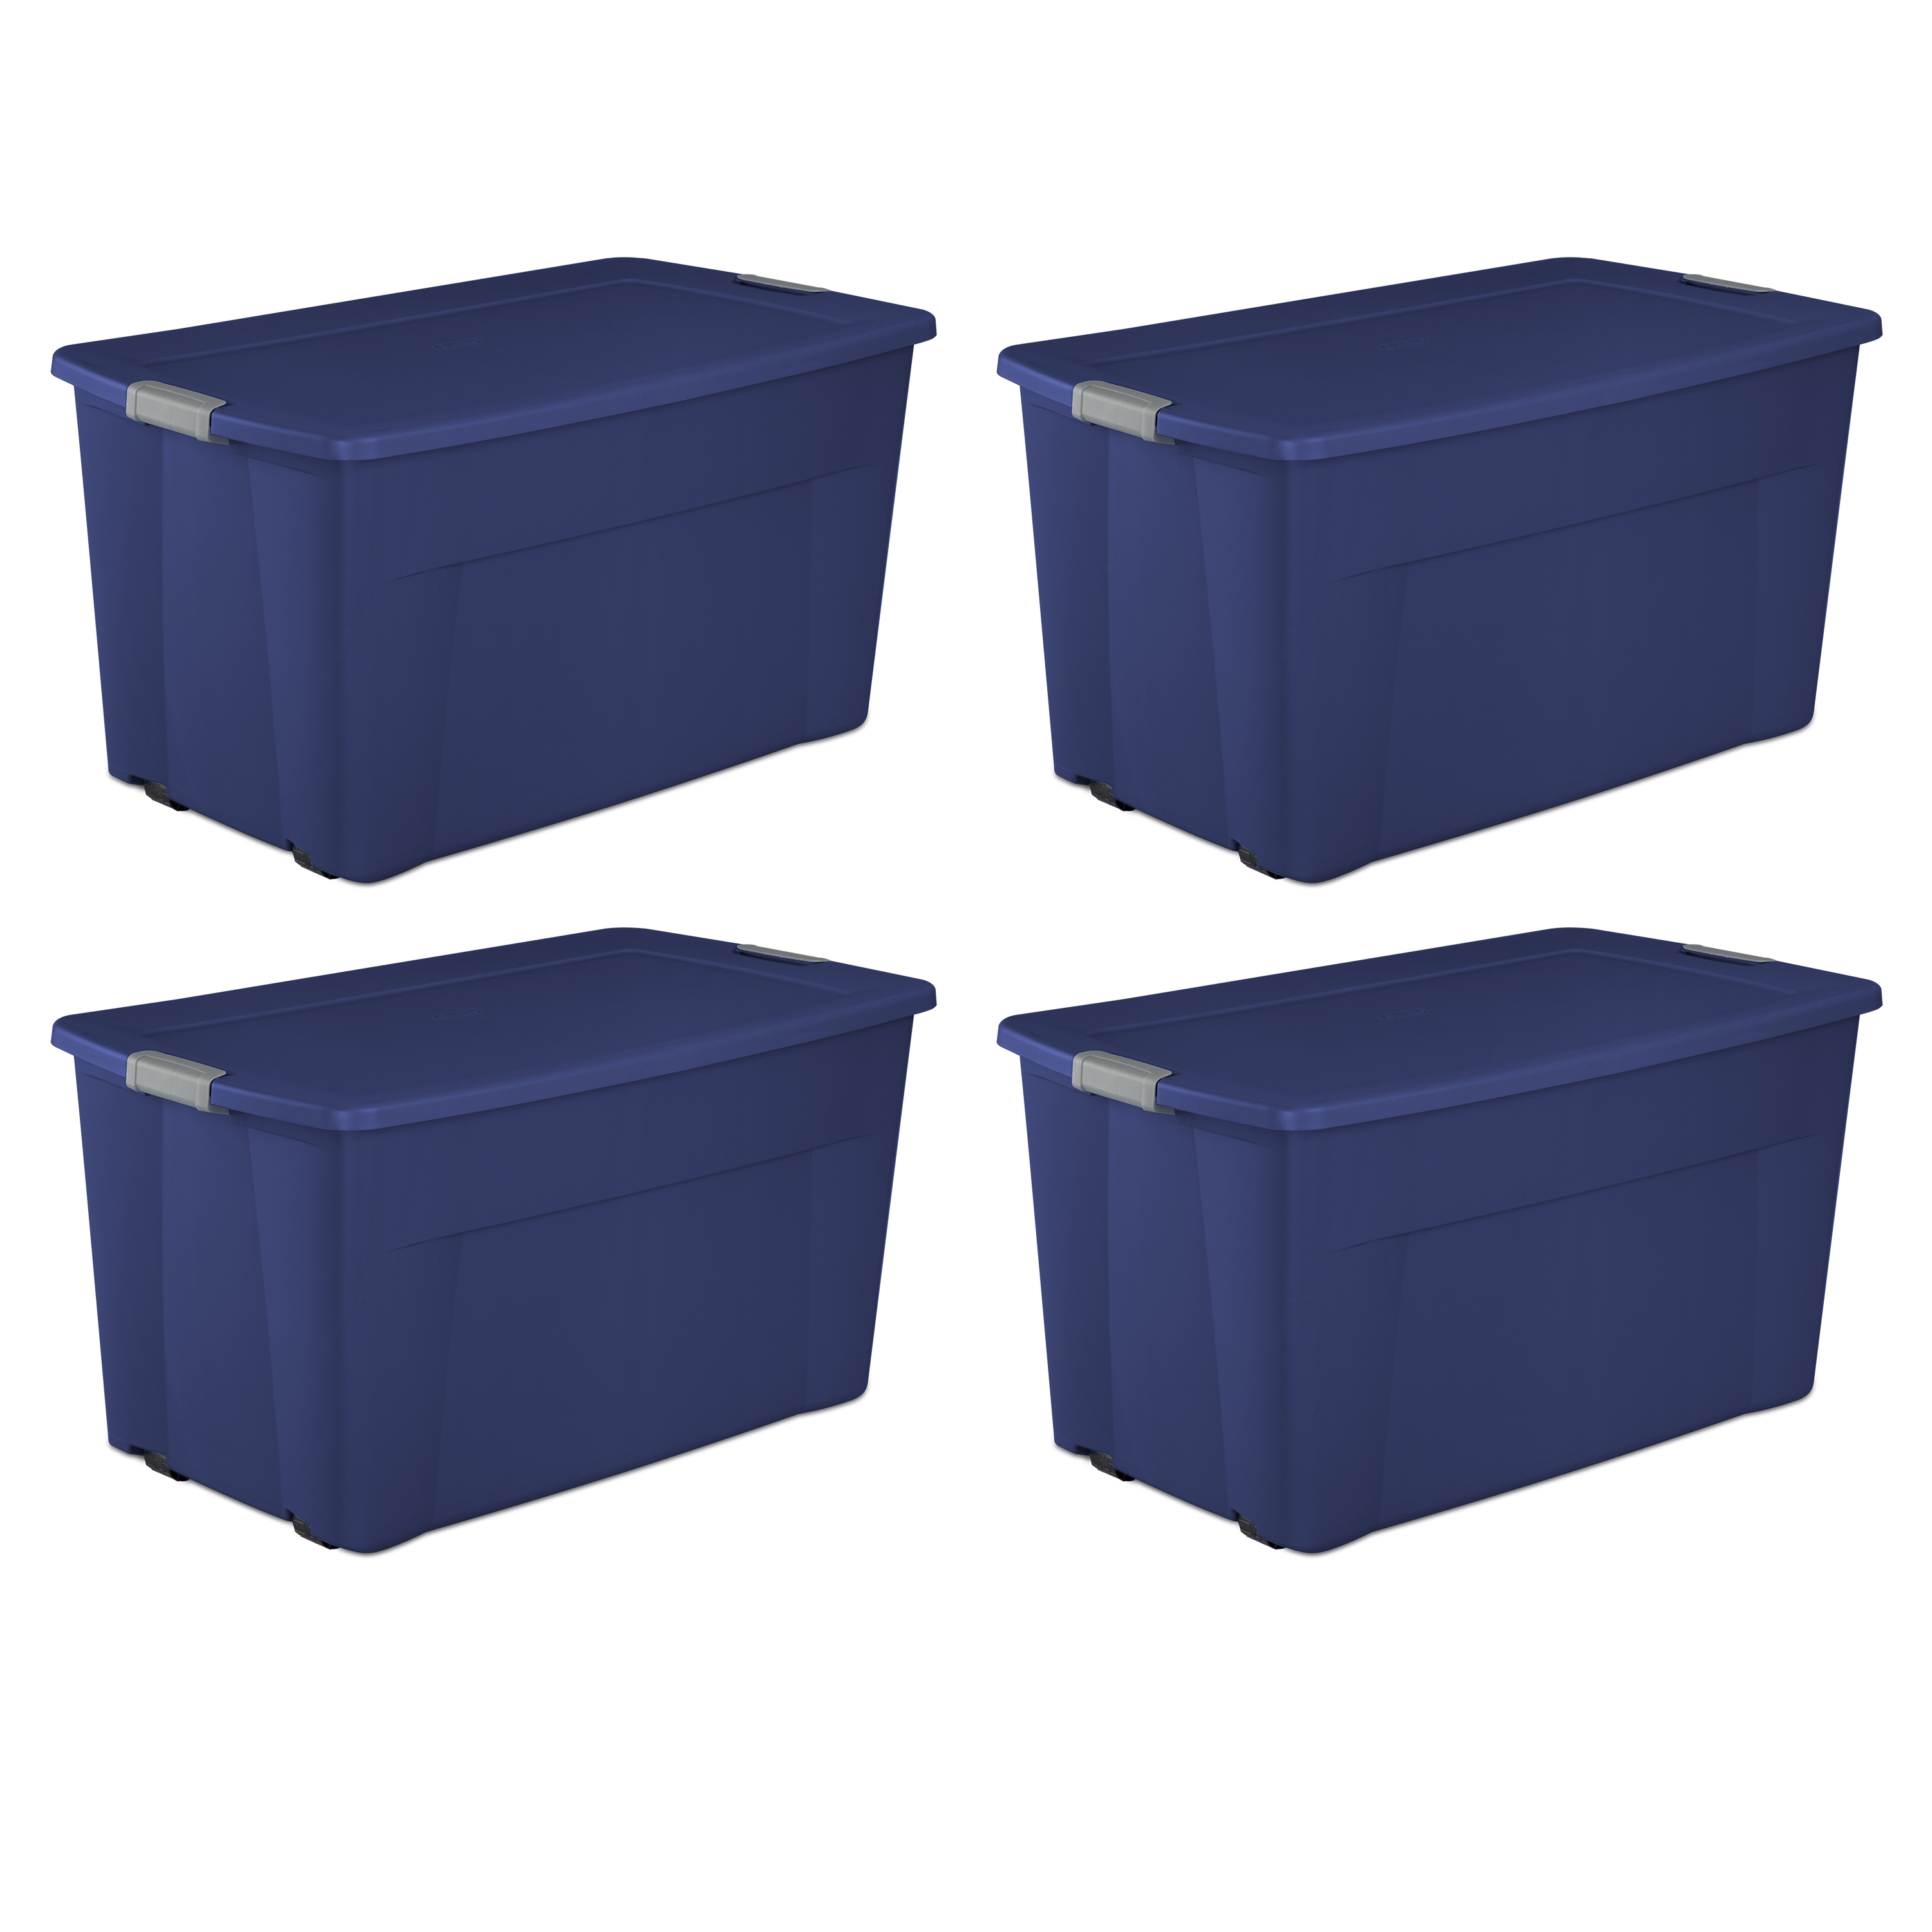 Charmant 170 L Wheeled Latch Tote, Case Of 4